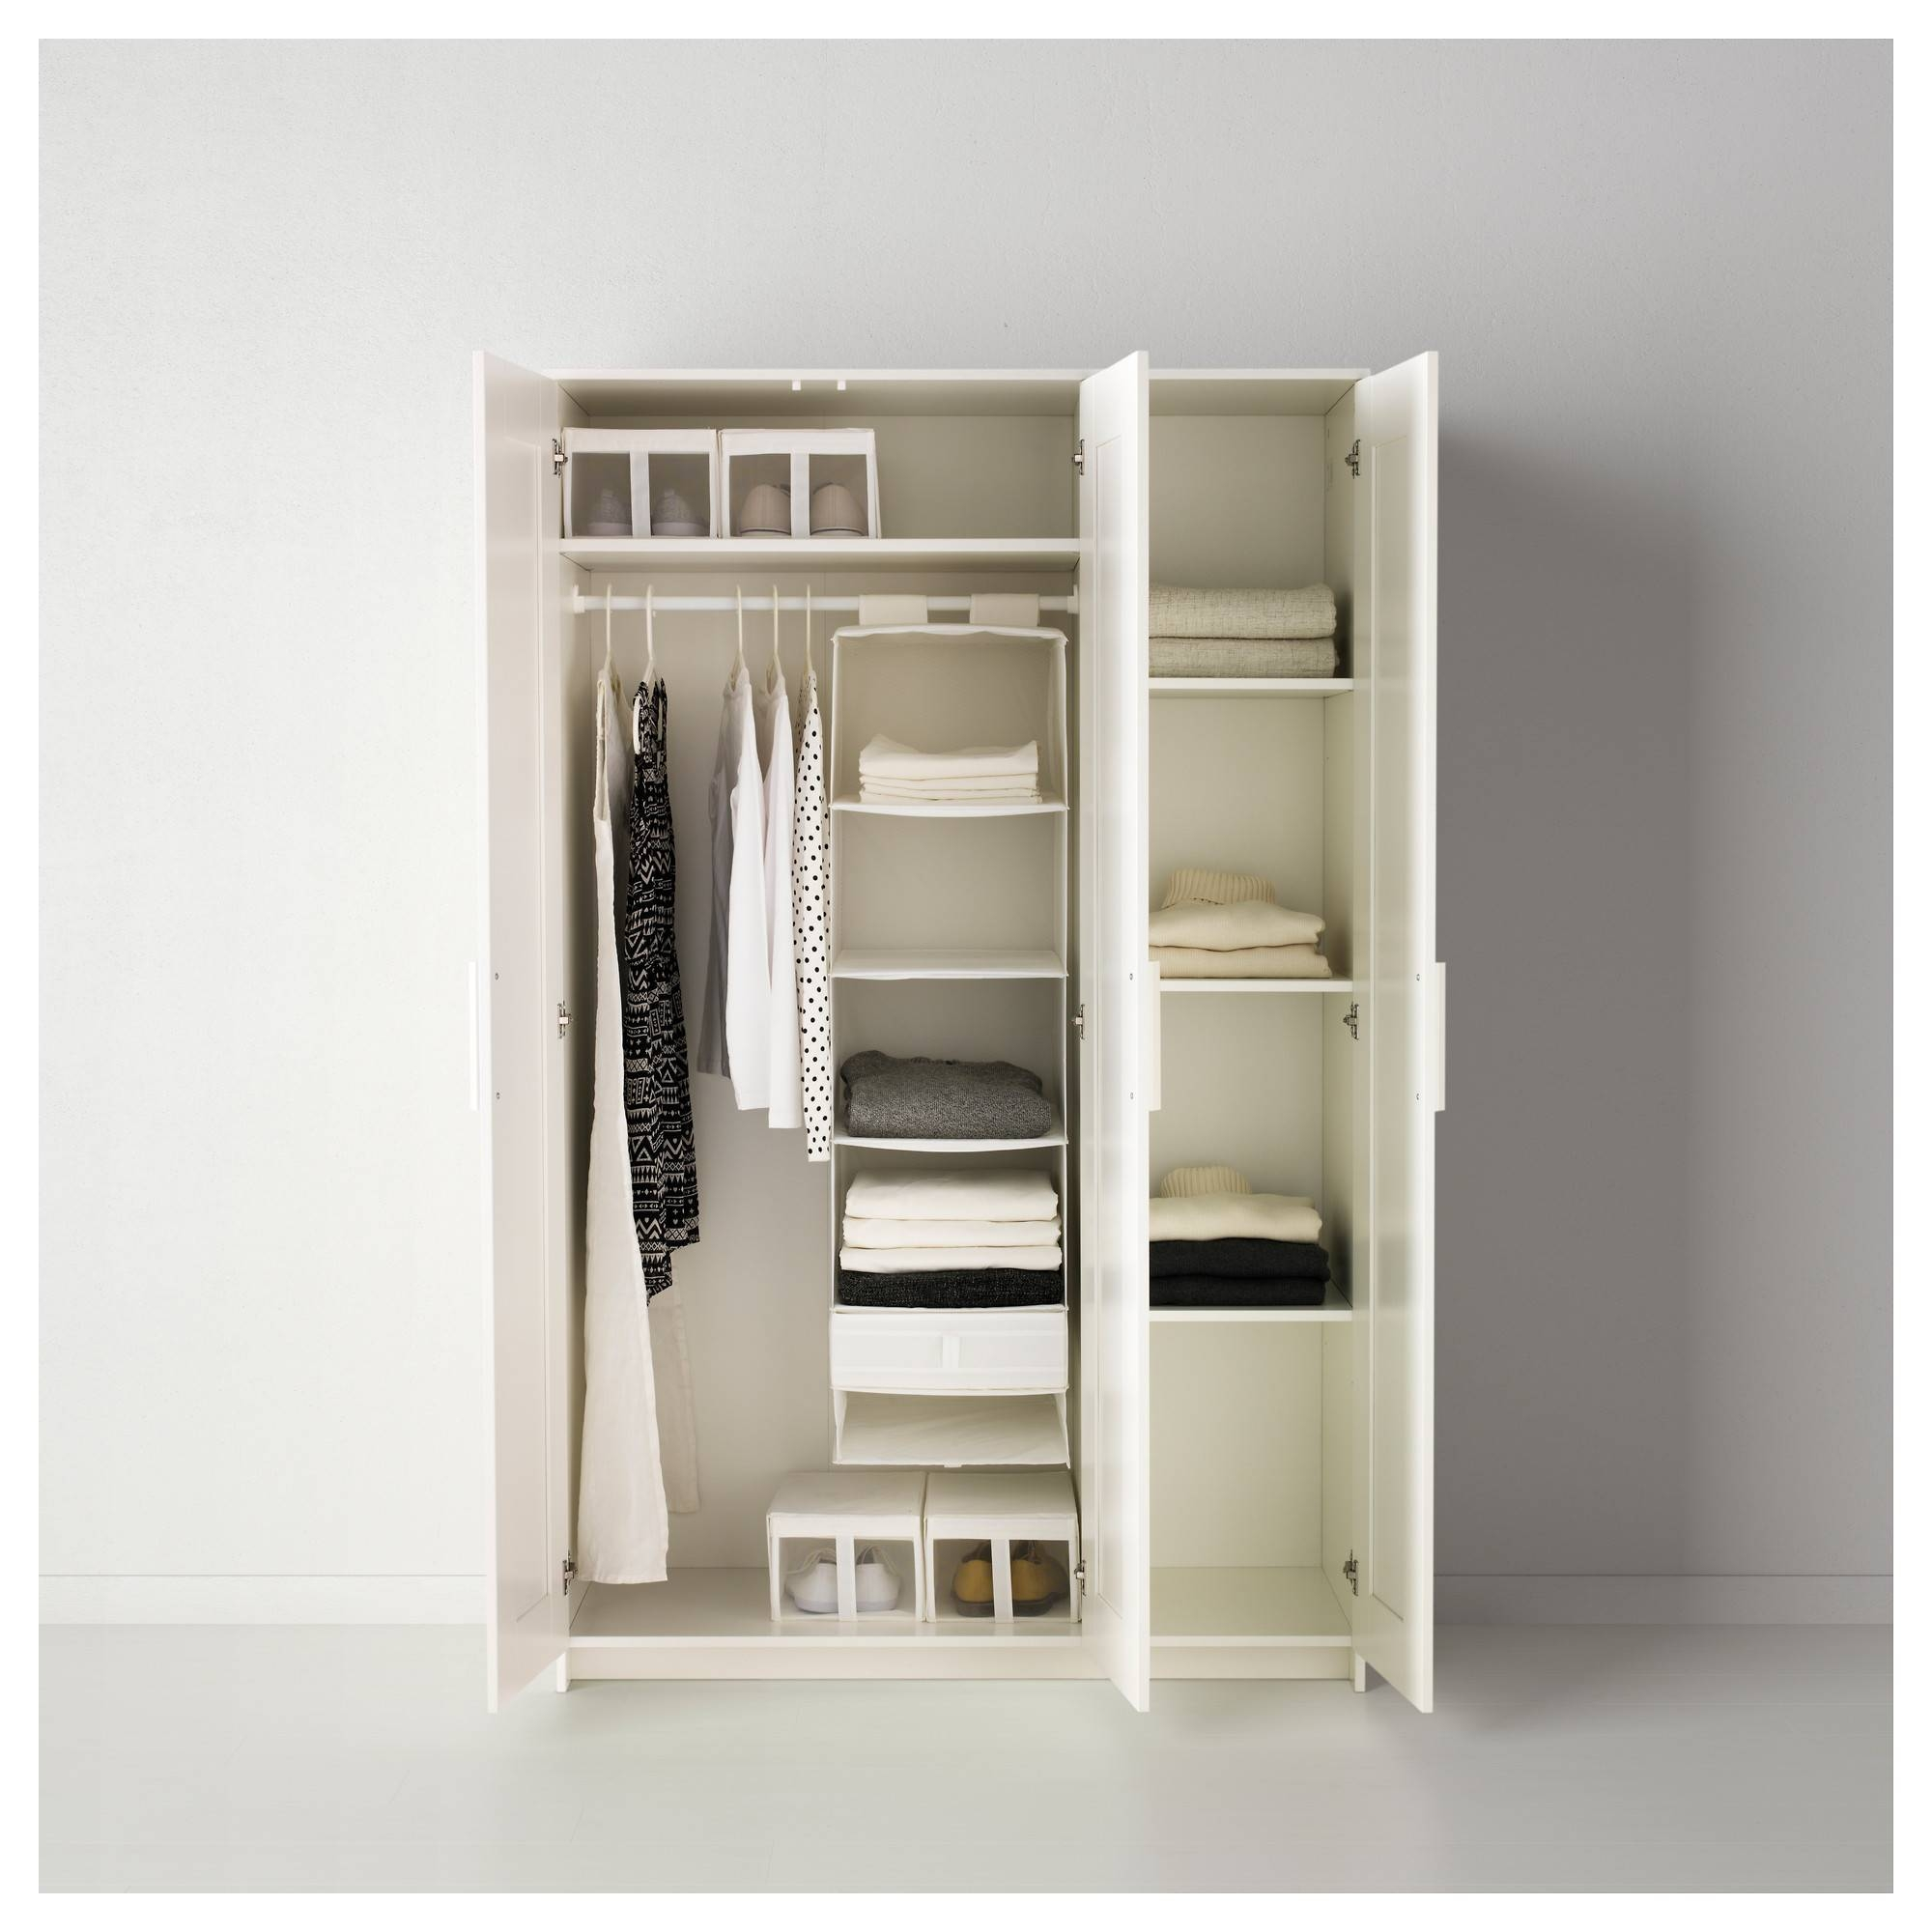 Brimnes Wardrobe With 3 Doors - White - Ikea regarding Wardrobe With Shelves and Drawers (Image 10 of 30)